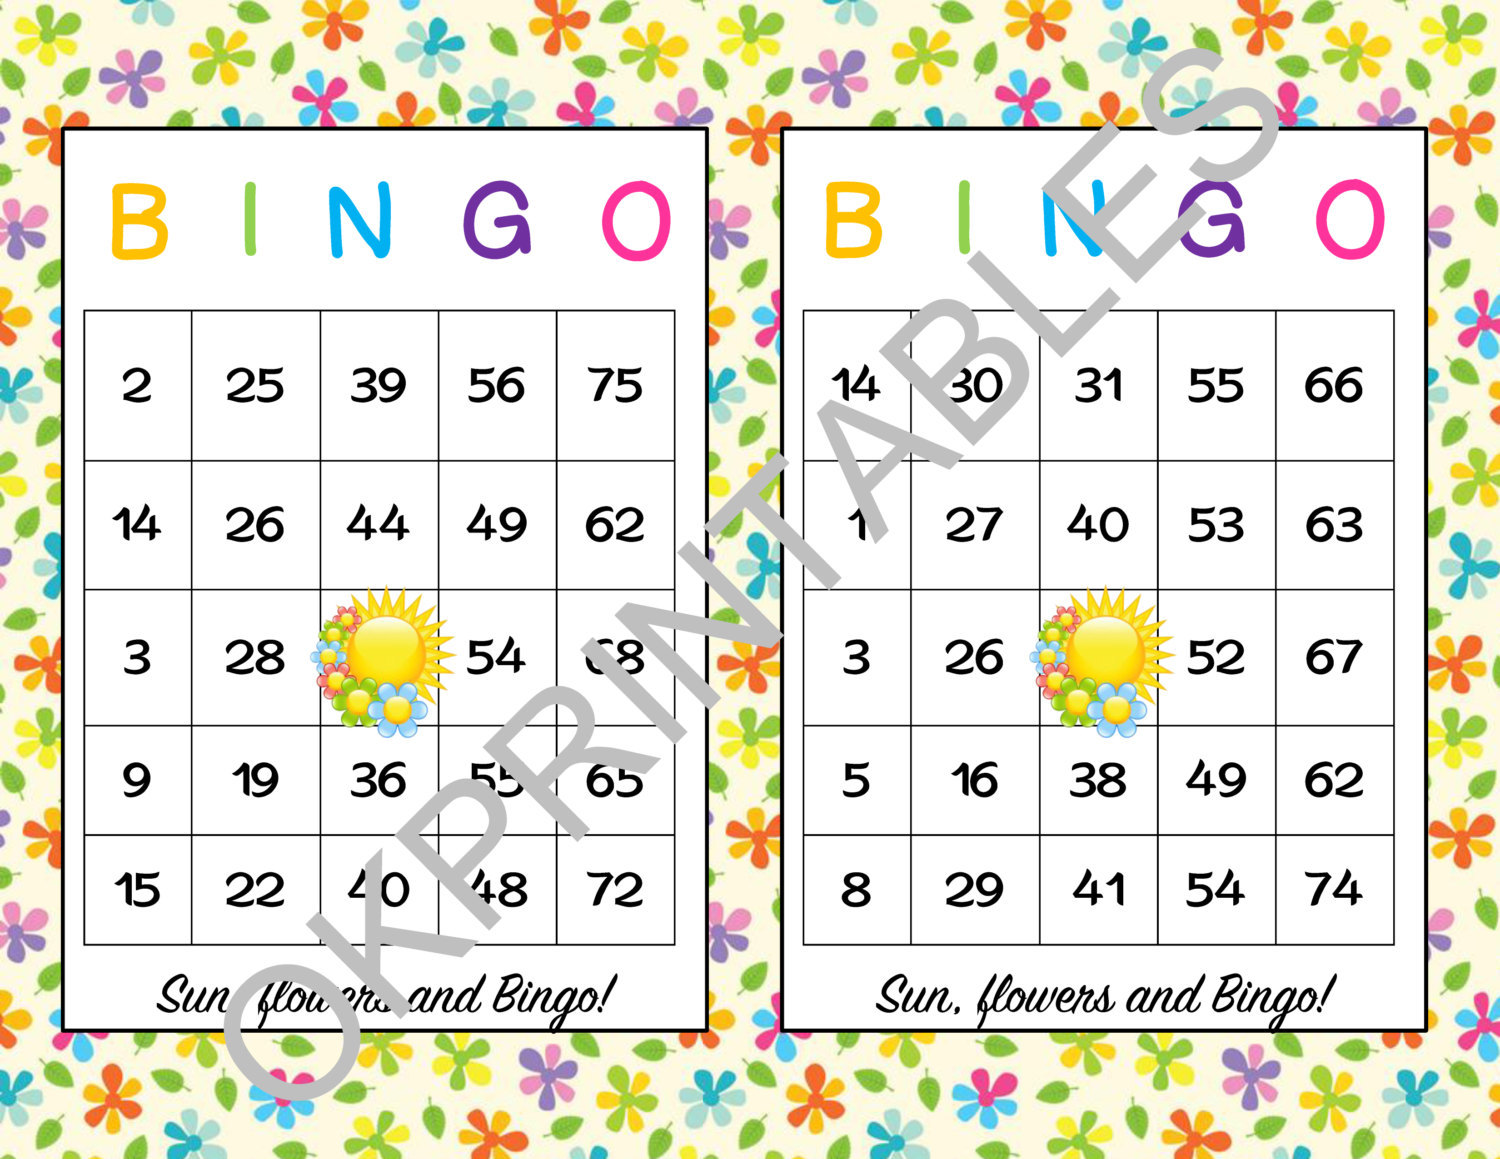 photo regarding Spring Bingo Game Printable known as 50 Solar and bouquets Bingo playing cards - Printable and 10 equivalent goods